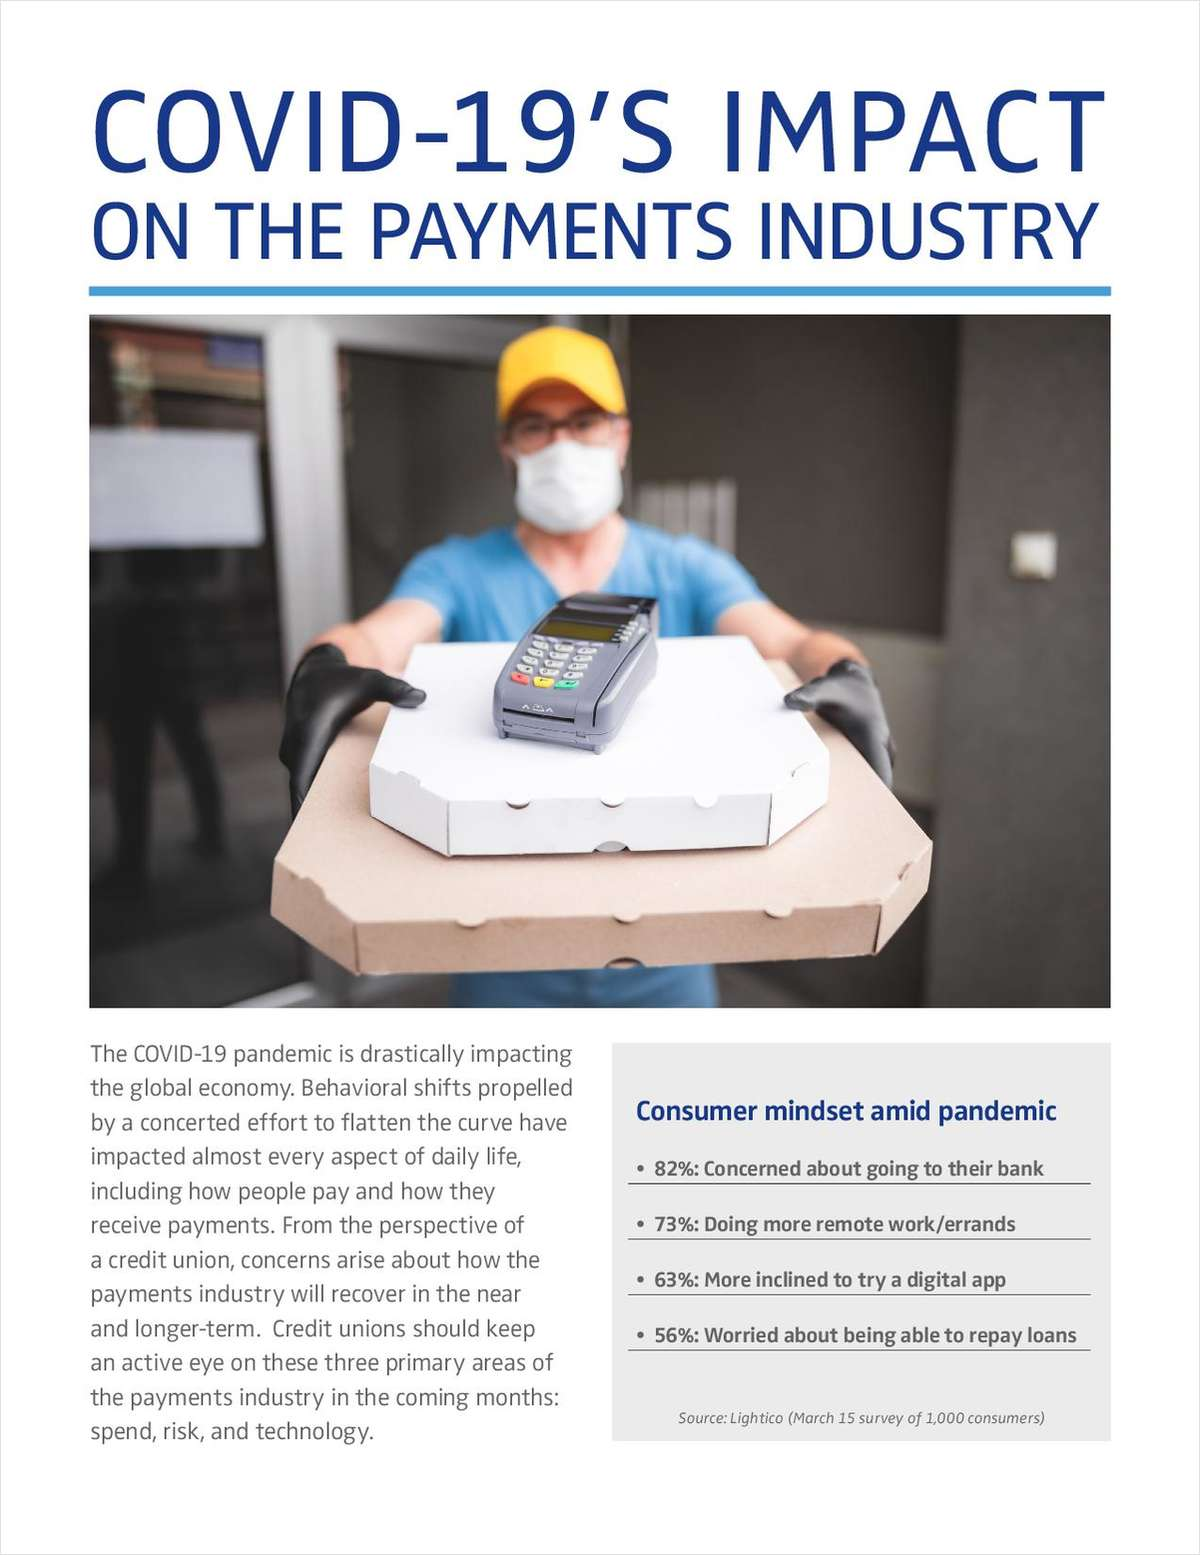 Covid-19's Impact on the Payments Industry